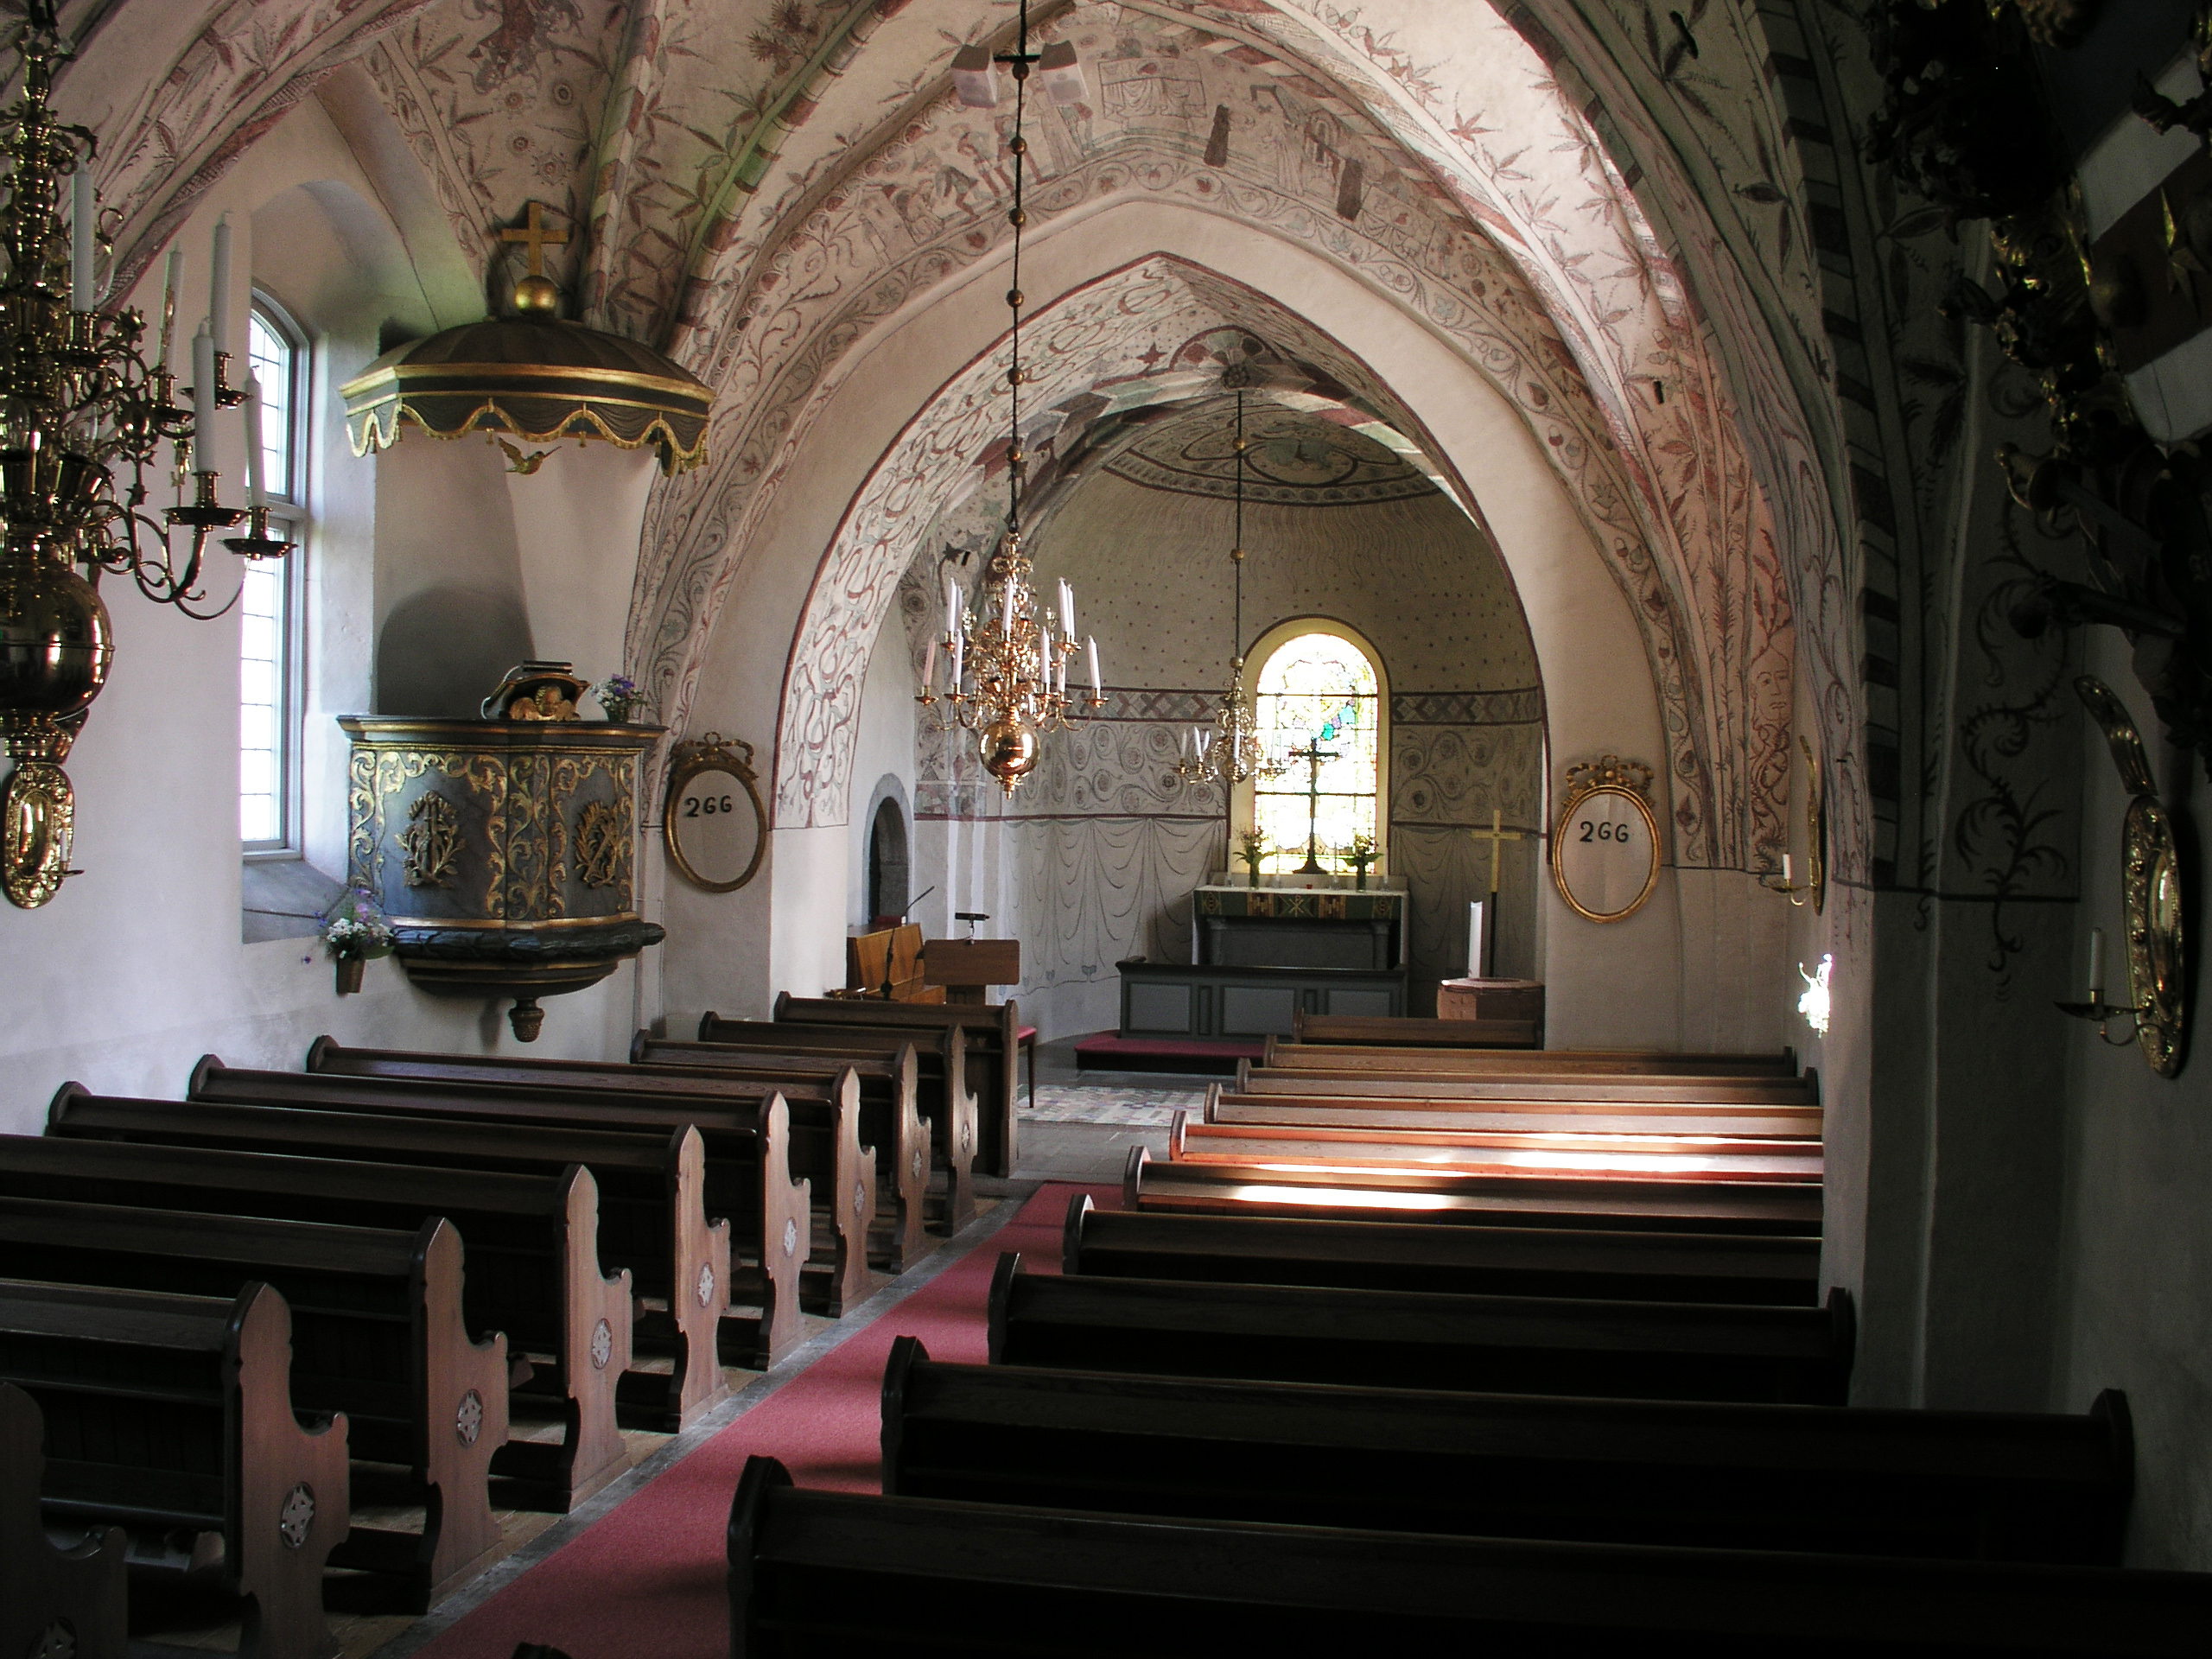 http://upload.wikimedia.org/wikipedia/commons/3/38/Kaga_kyrka_nave1.jpg